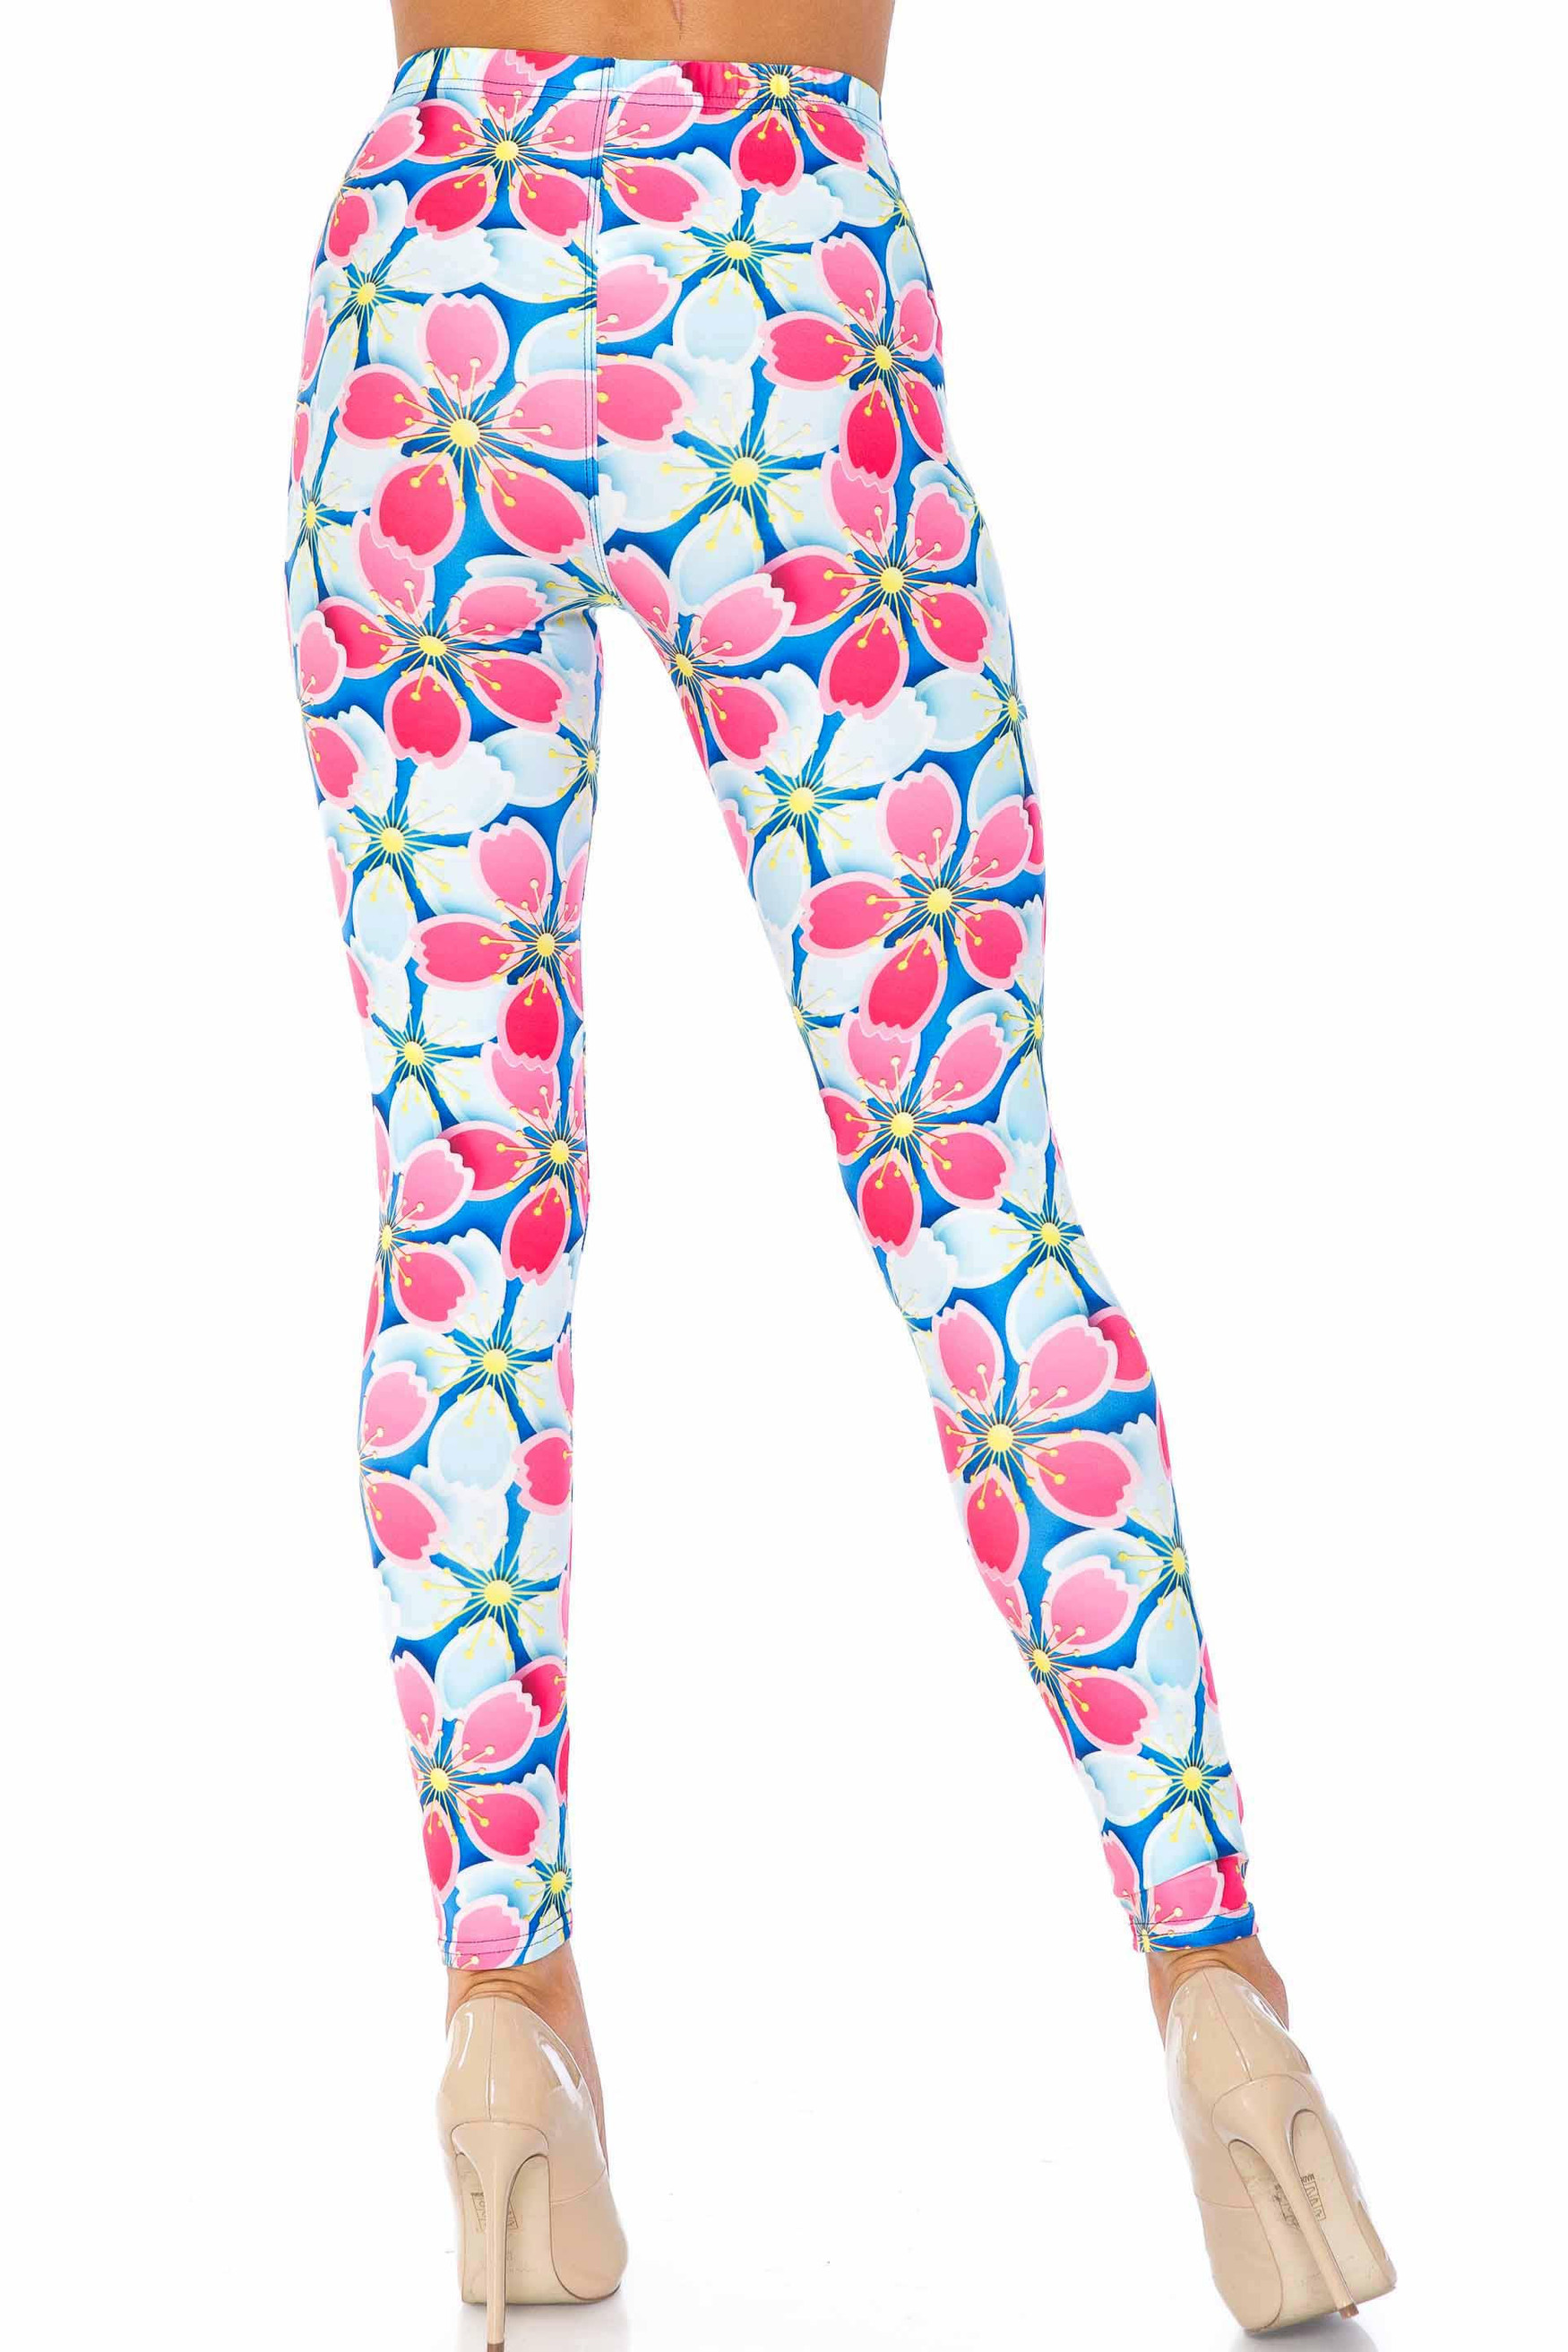 Creamy Soft Pink and Blue Sunshine Floral Extra Plus Size Leggings - 3X-5X - USA Fashion™